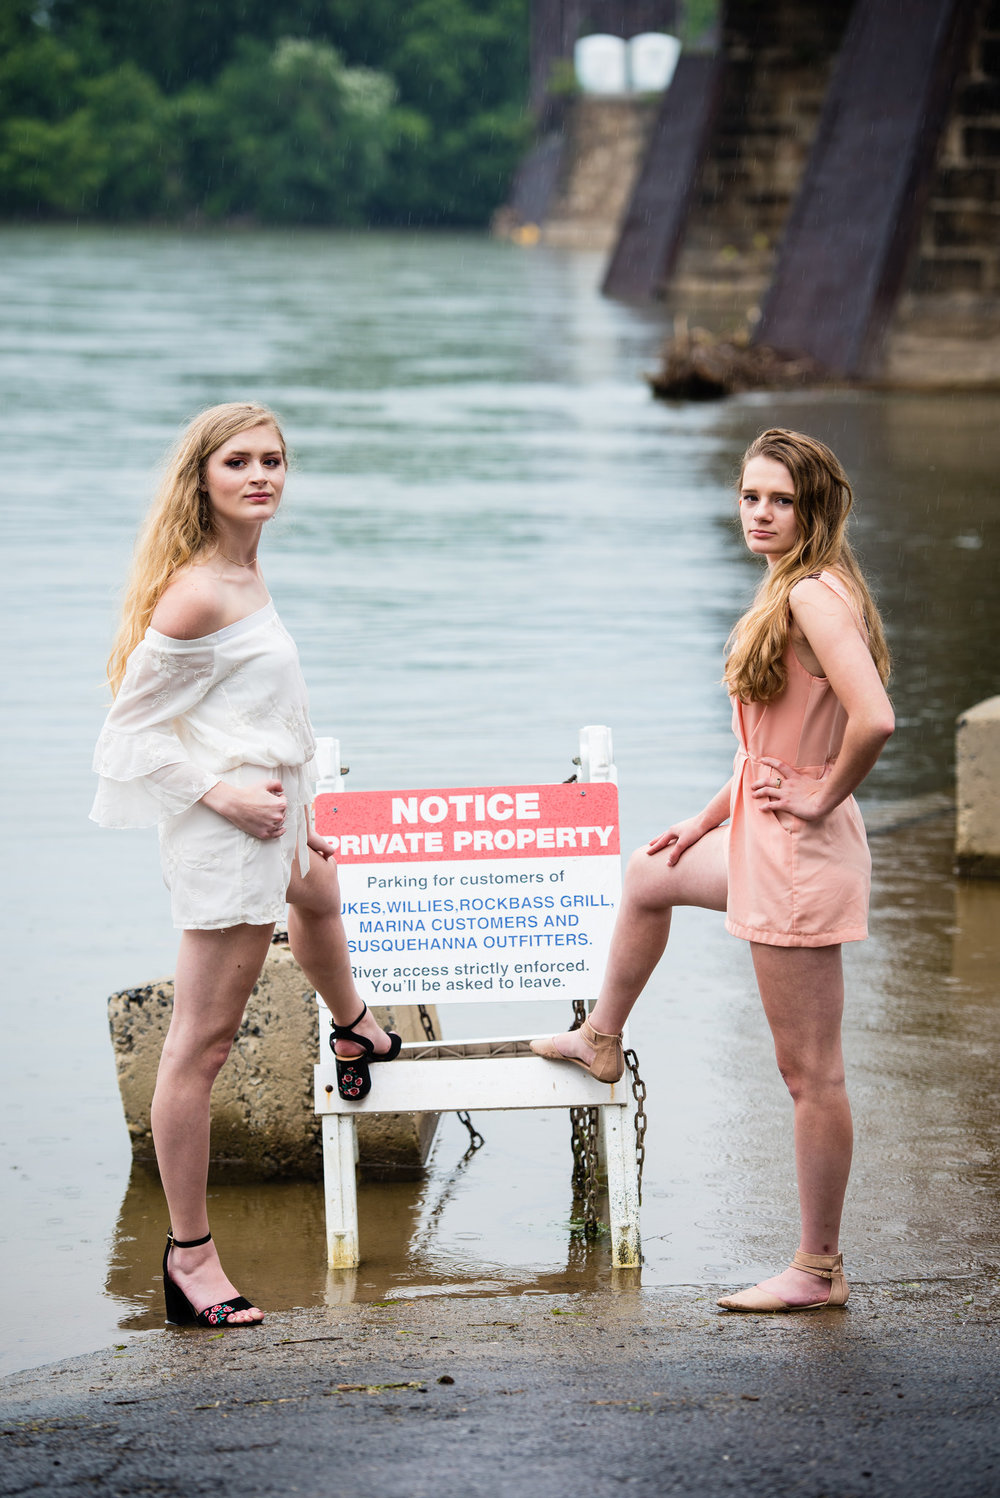 Even though the humidity is starting to show in their hair, the wet look only adds to the grunge of this photoshoot.